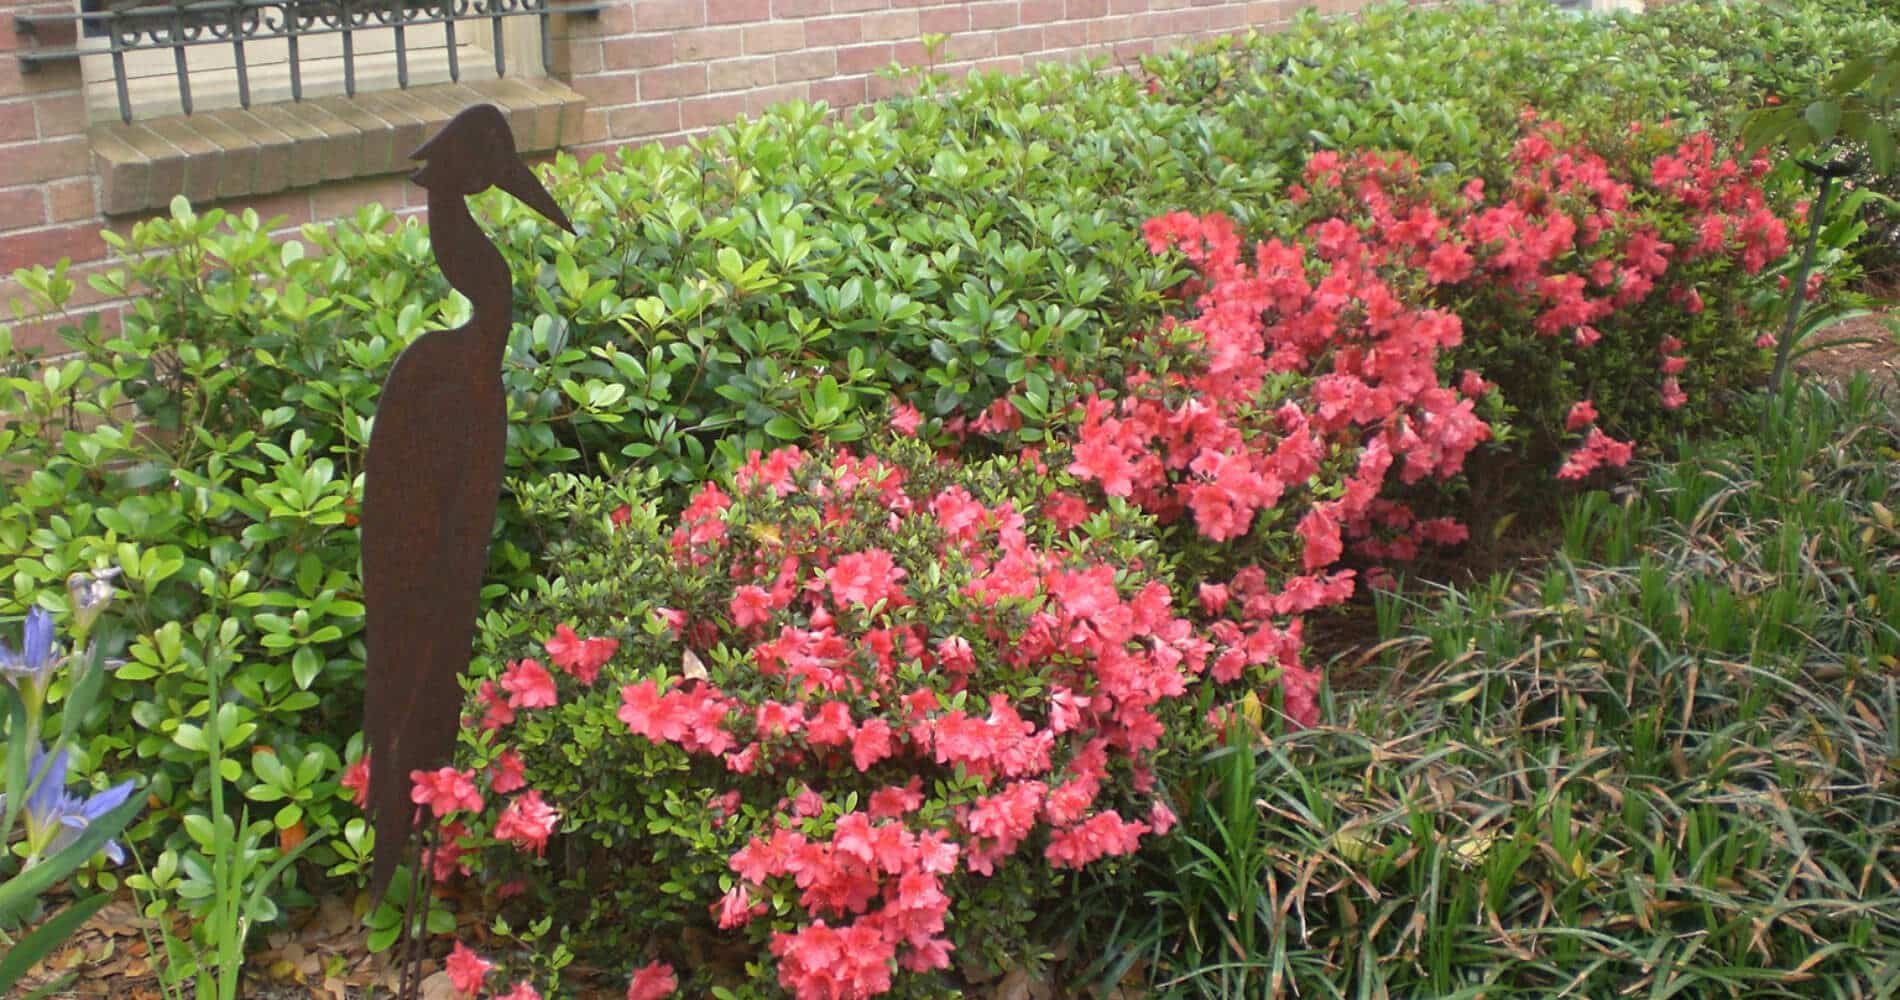 Pink Azaleas and green hedges along brick wall with iron pelican in flower bed